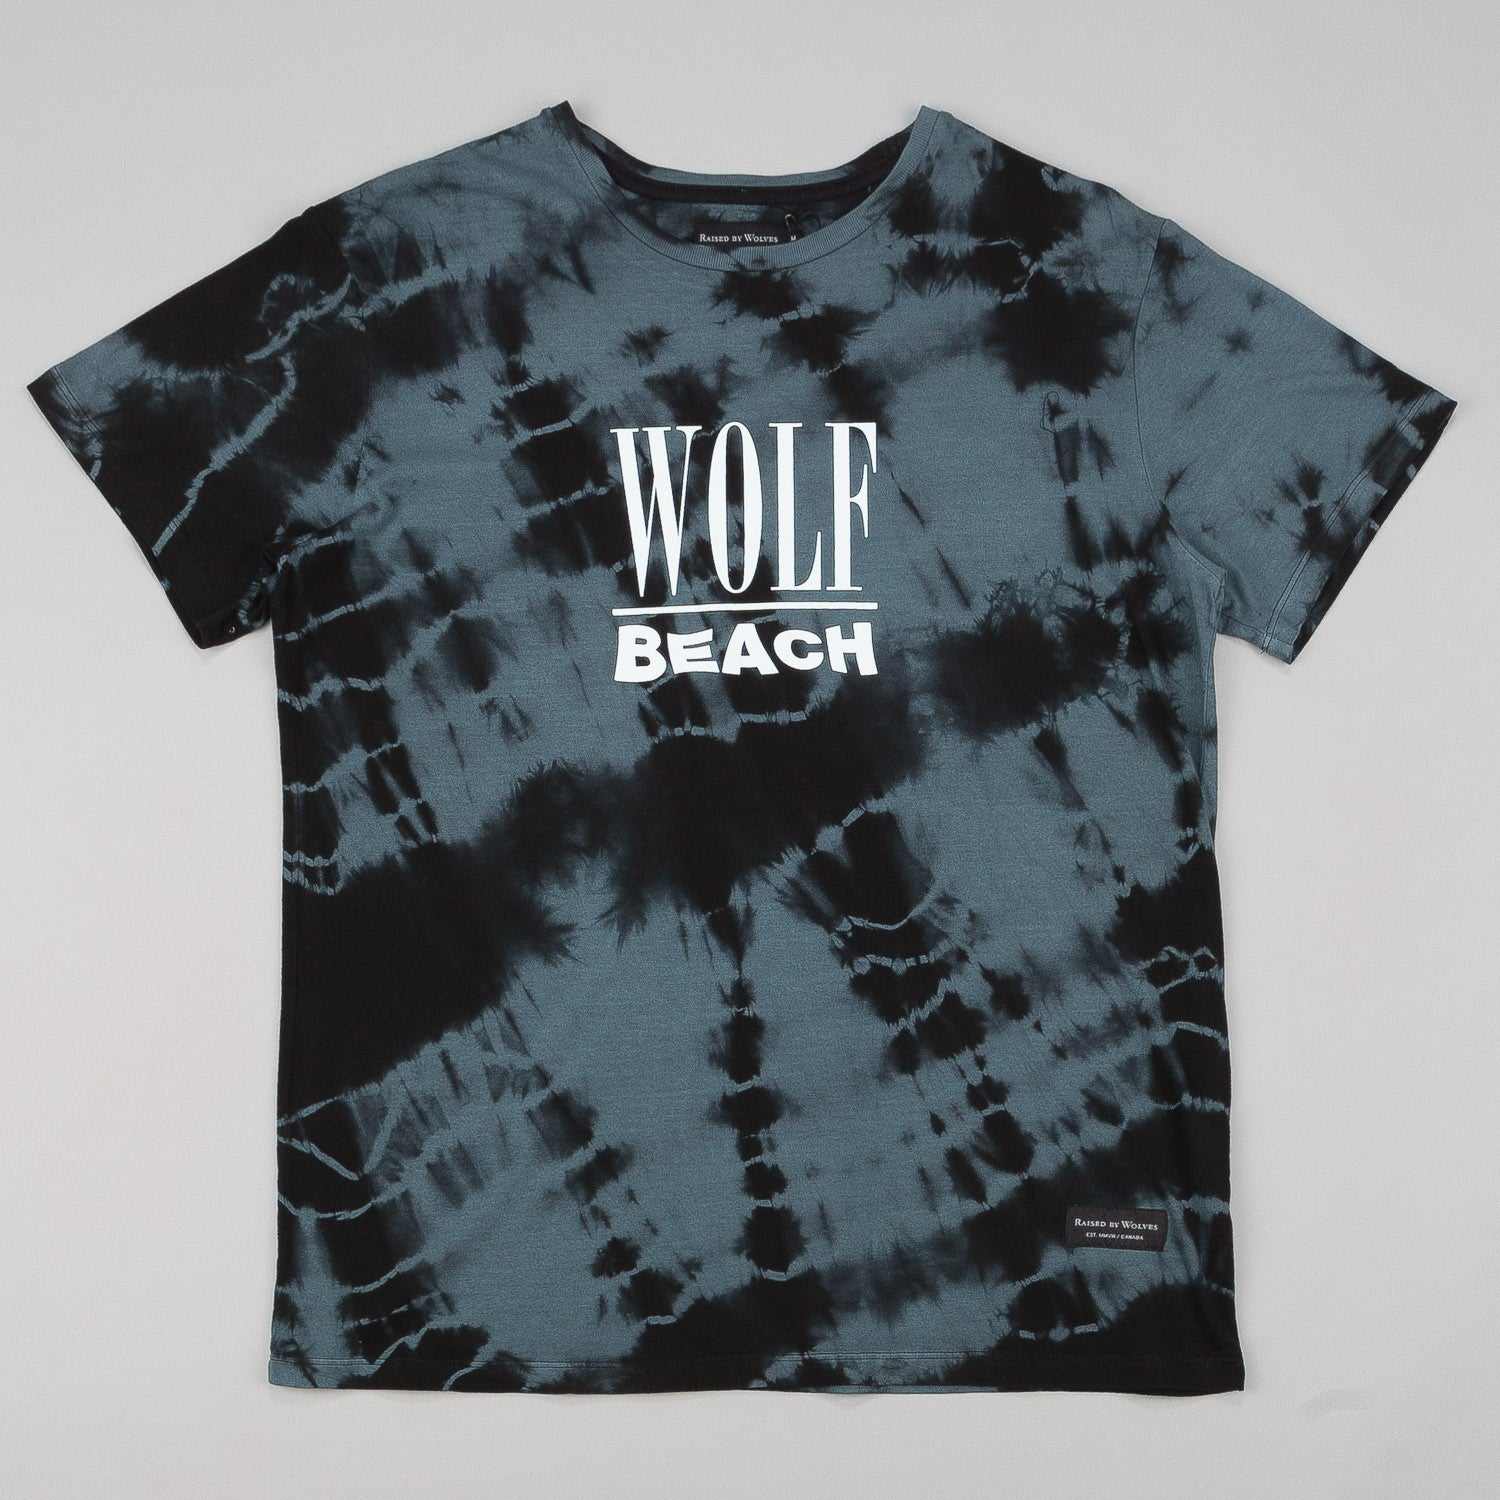 Raised By Wolves Wolf Beach T-Shirt